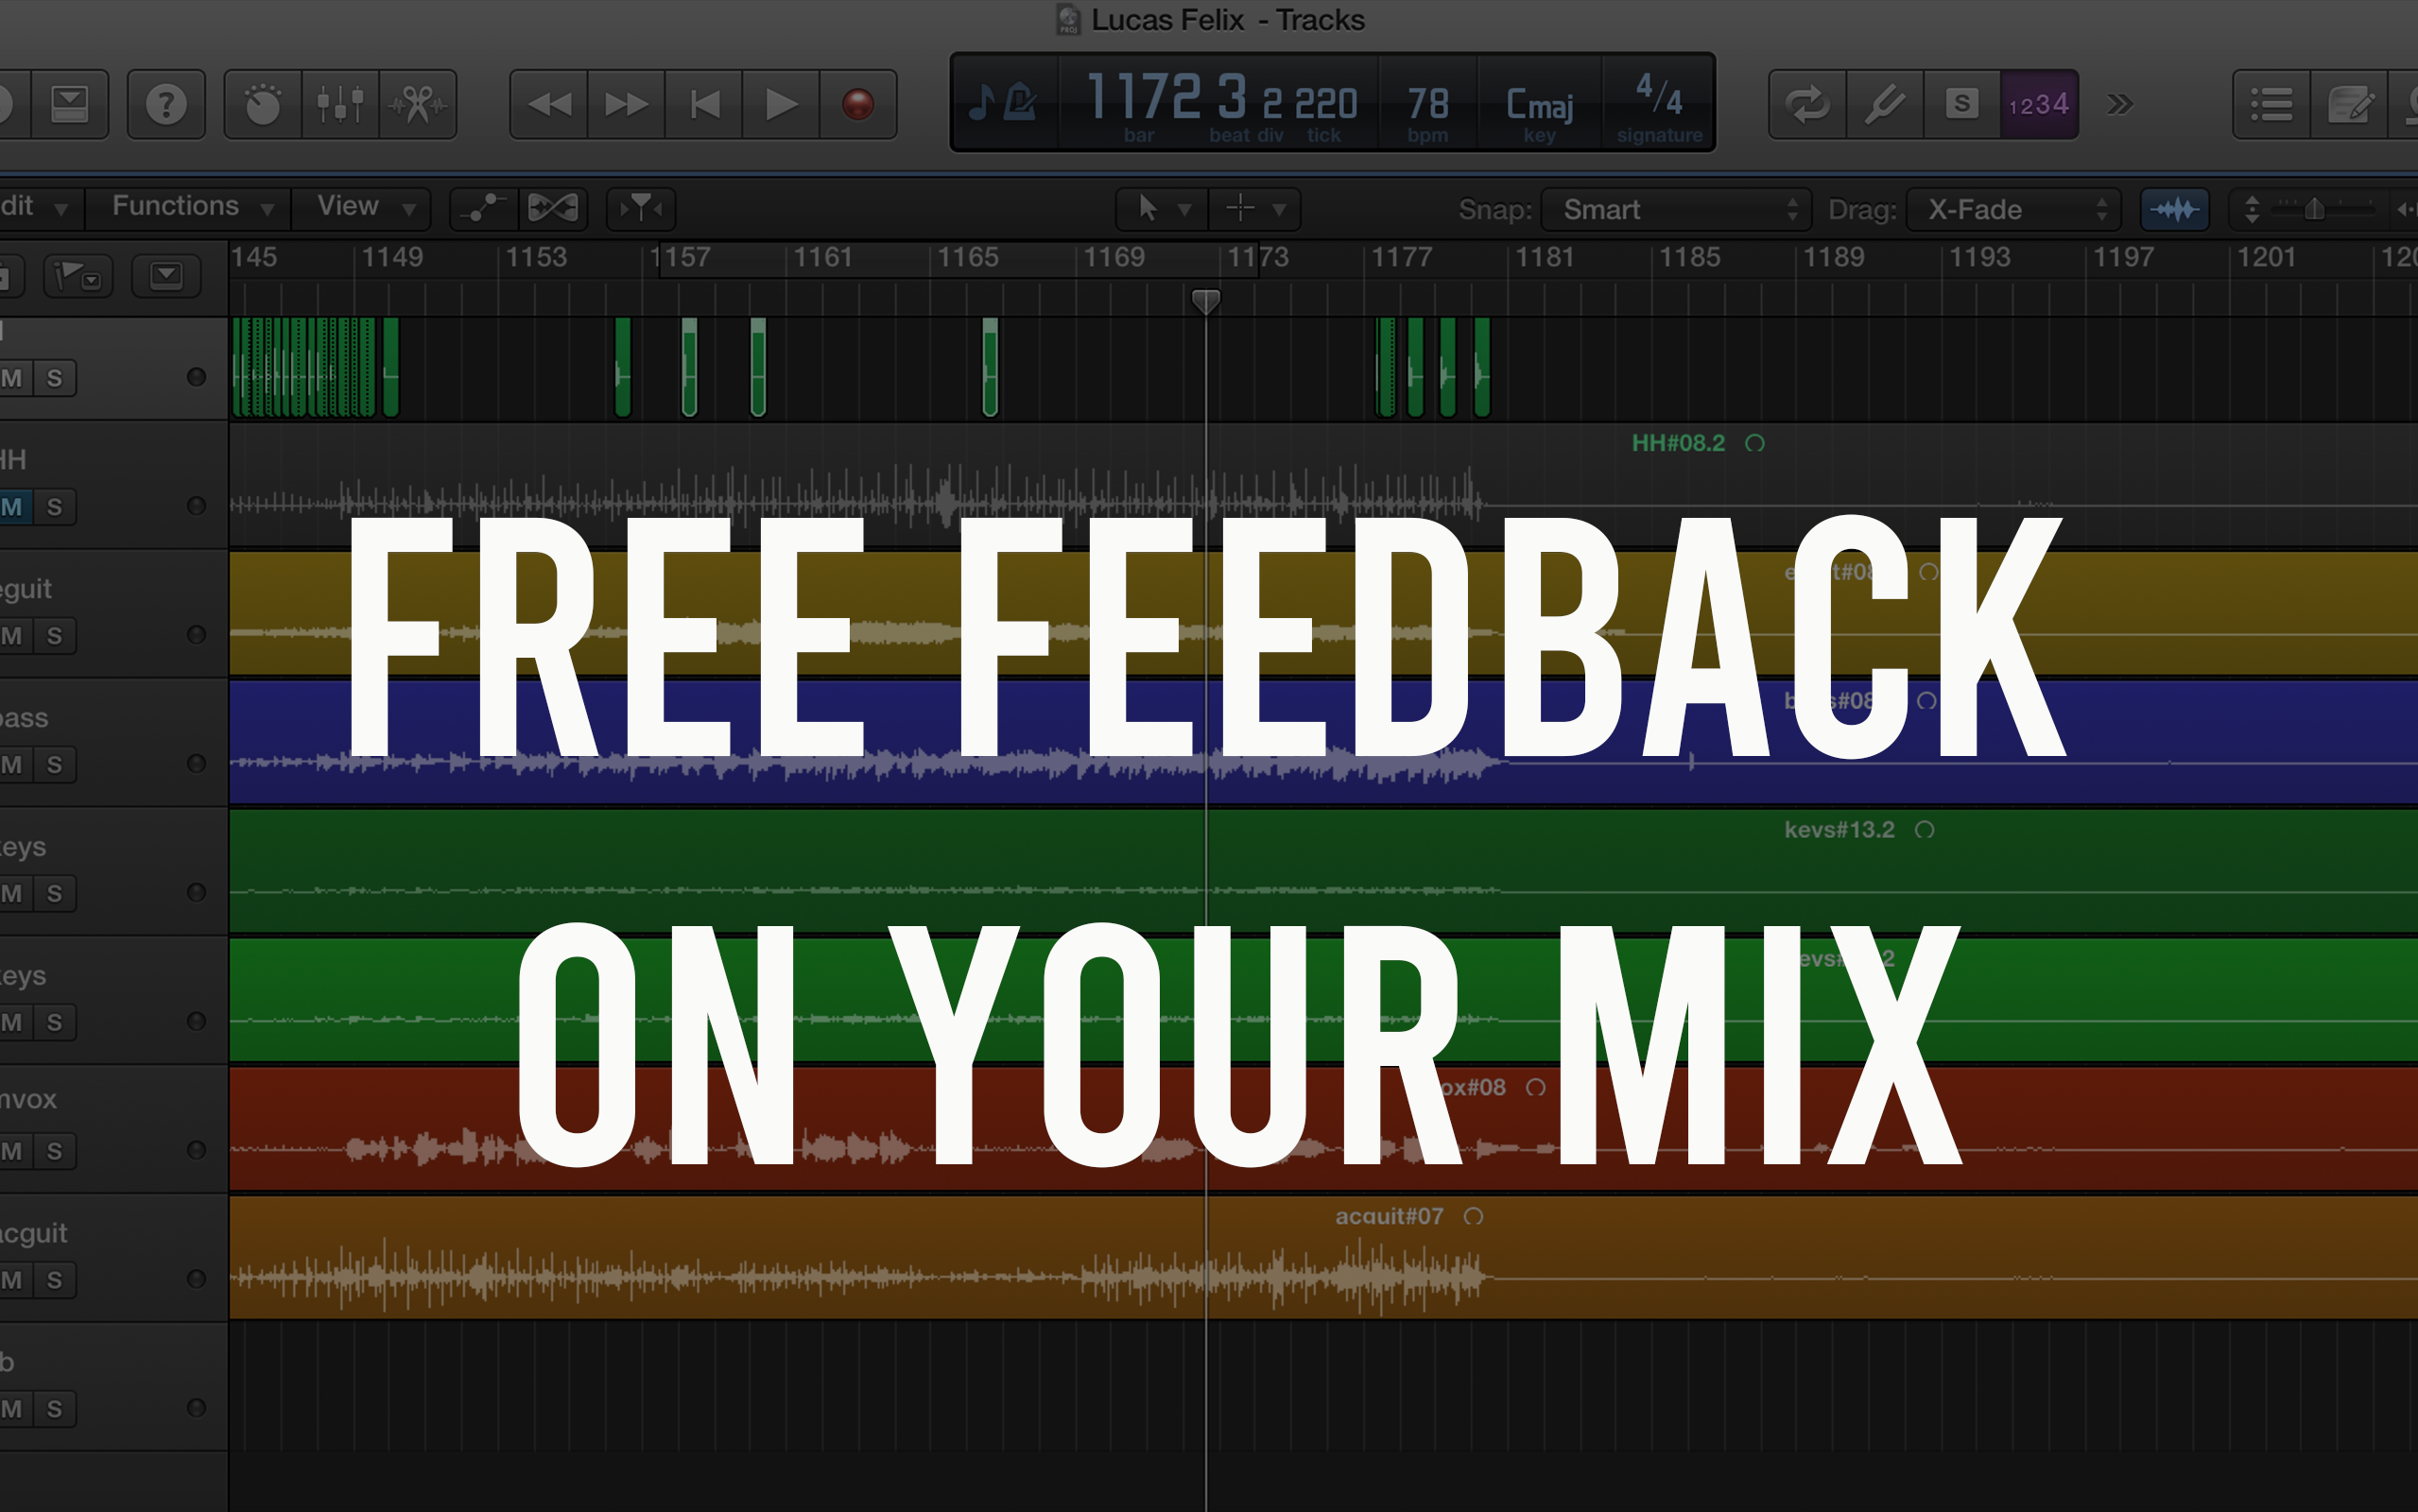 Free feedback on your mix